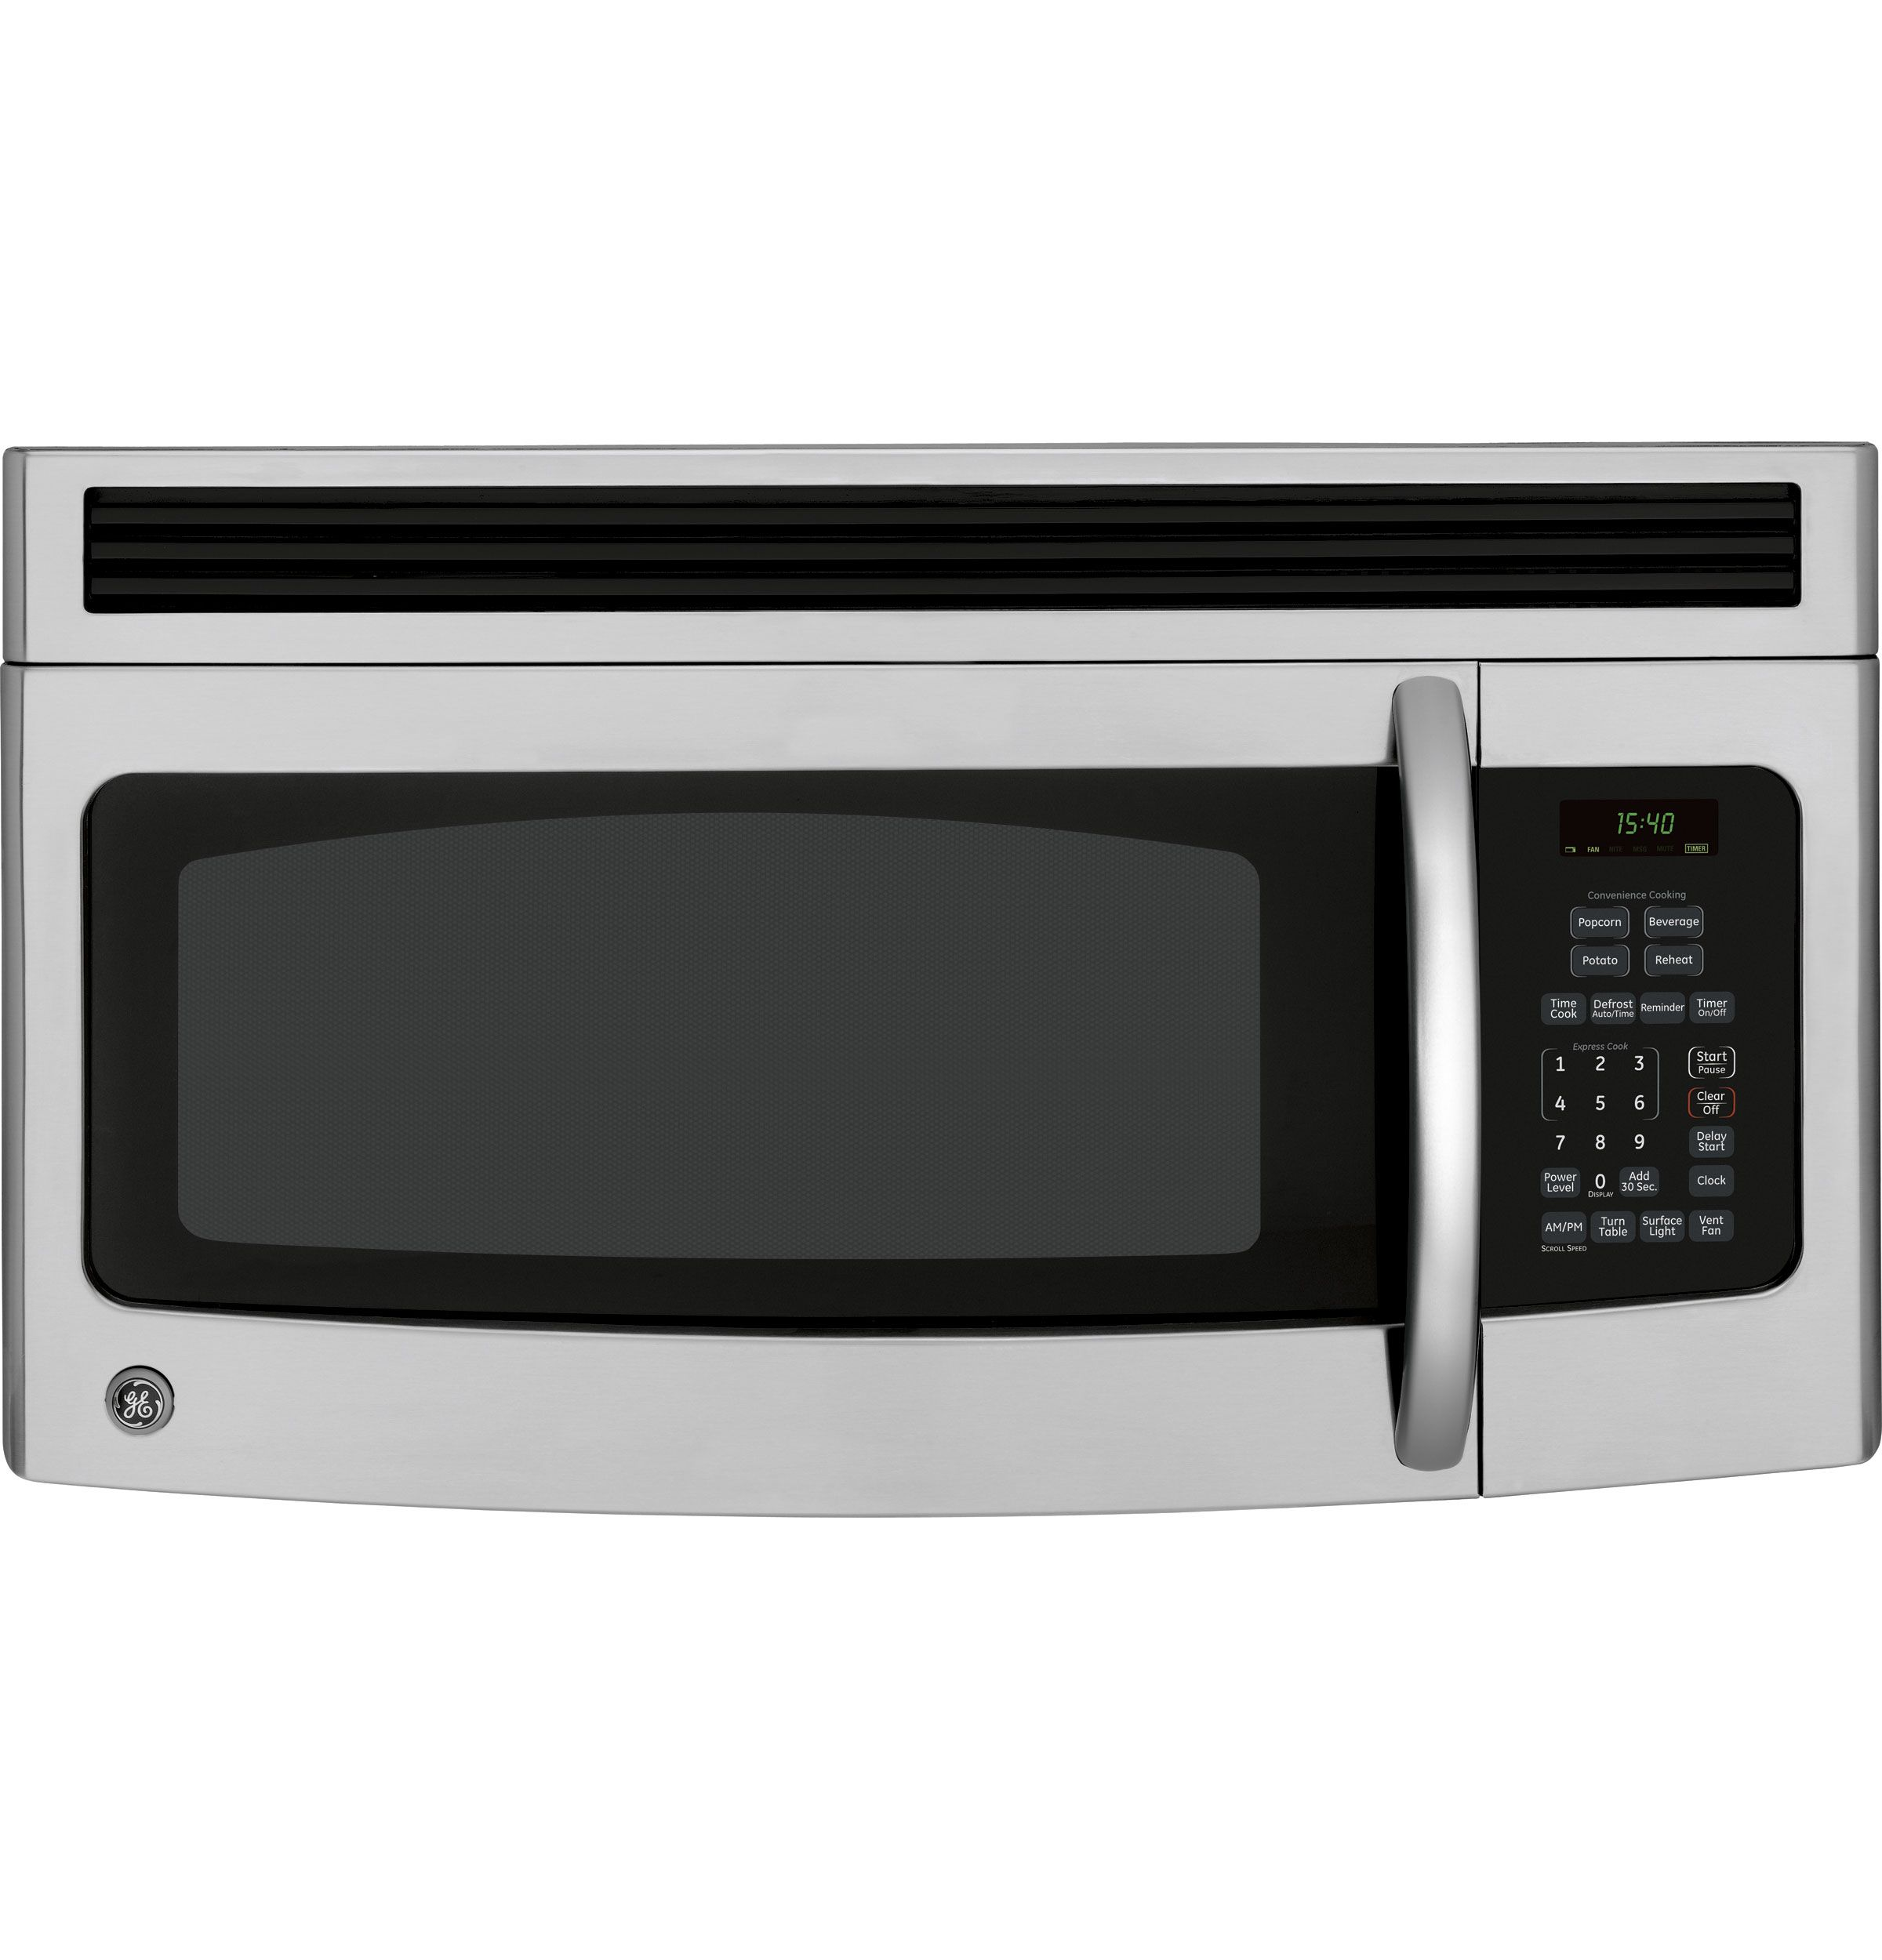 Jnm1541smss Ge Spacemaker Over The Range Microwave Oven Ge Appliances Range Microwave Stainless Steel Microwave Microwave Oven